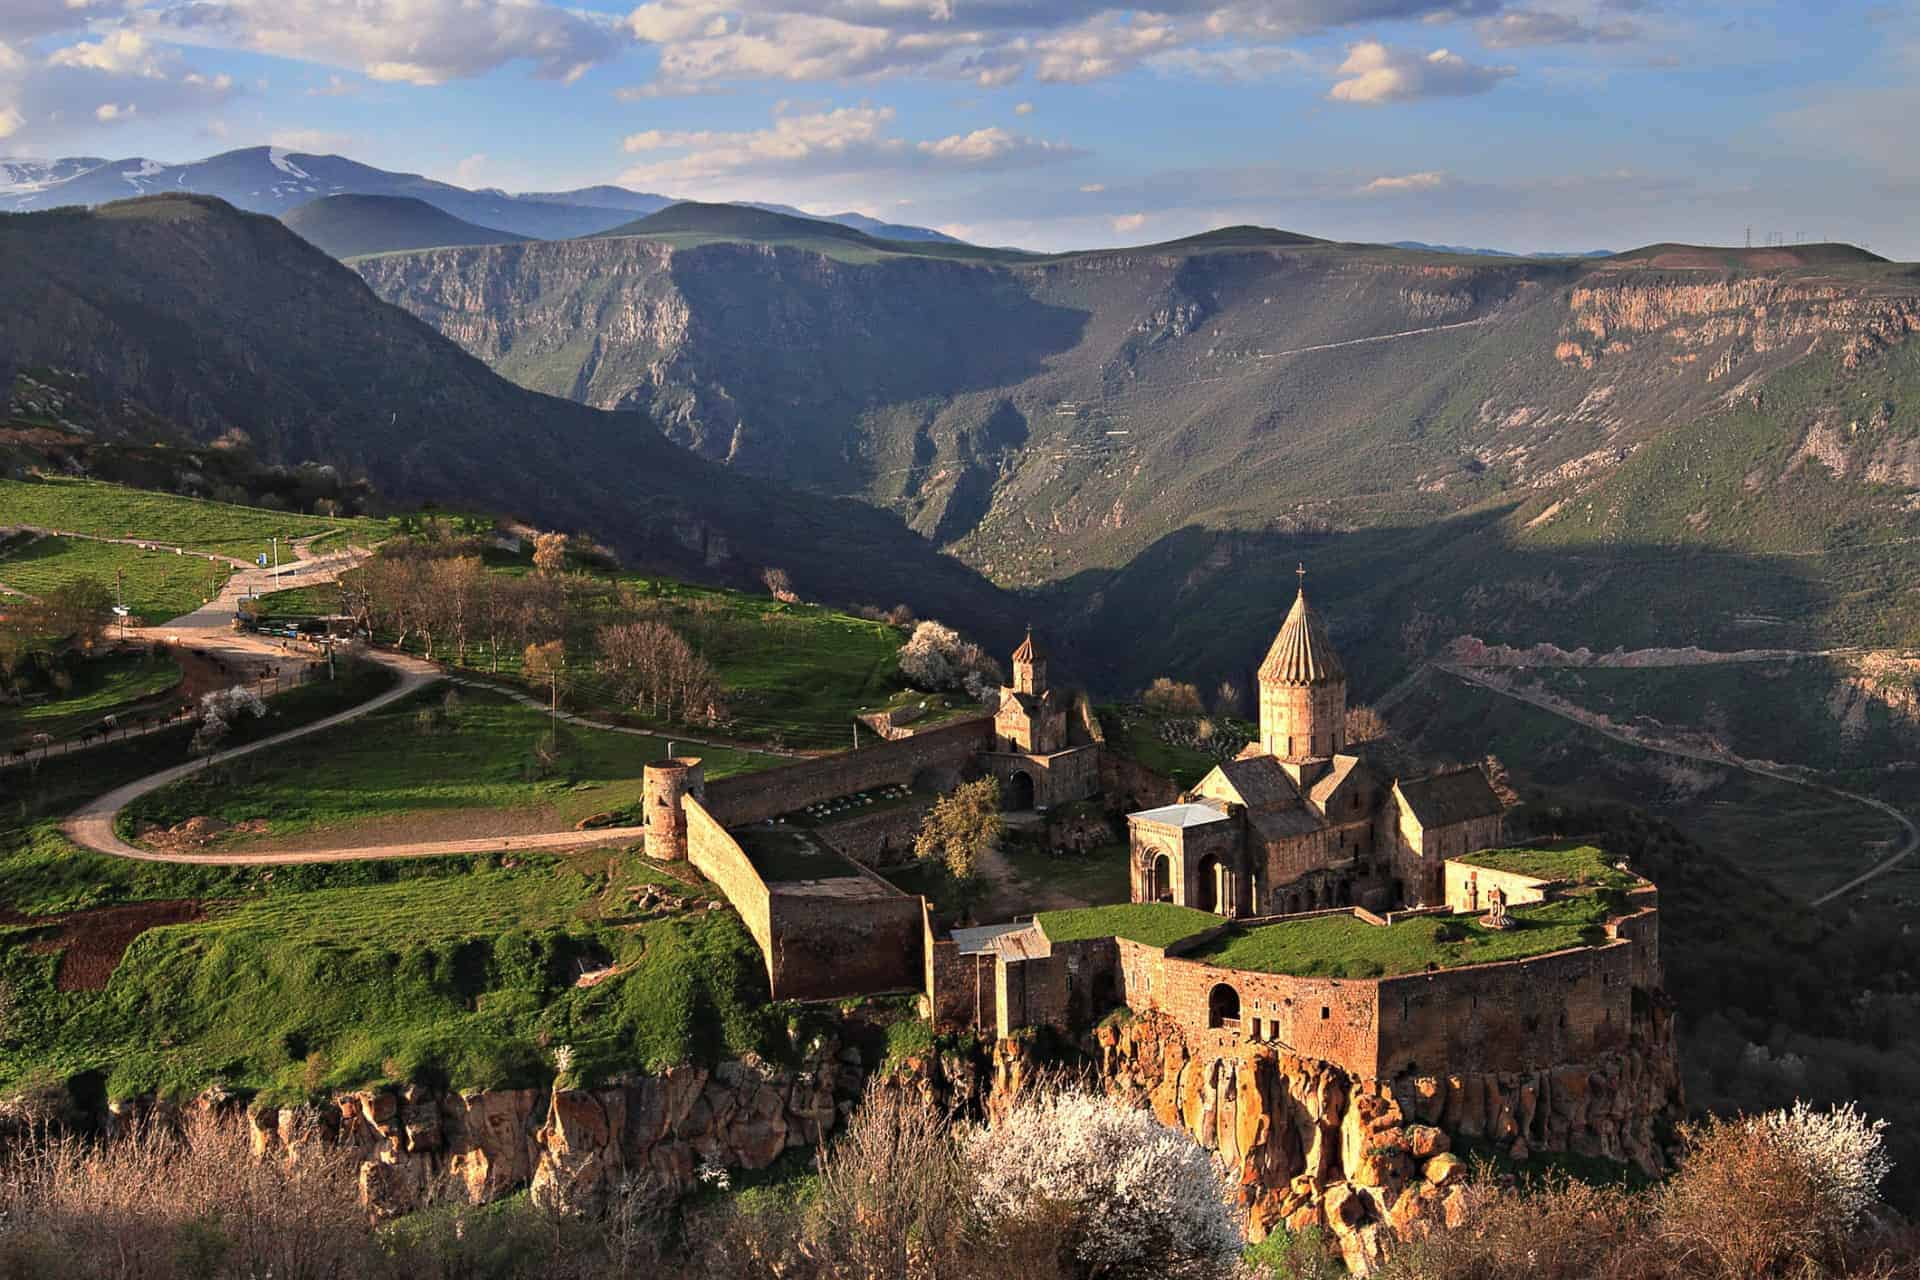 View over the Armenian religious complex of Tatev, near the city of Goris